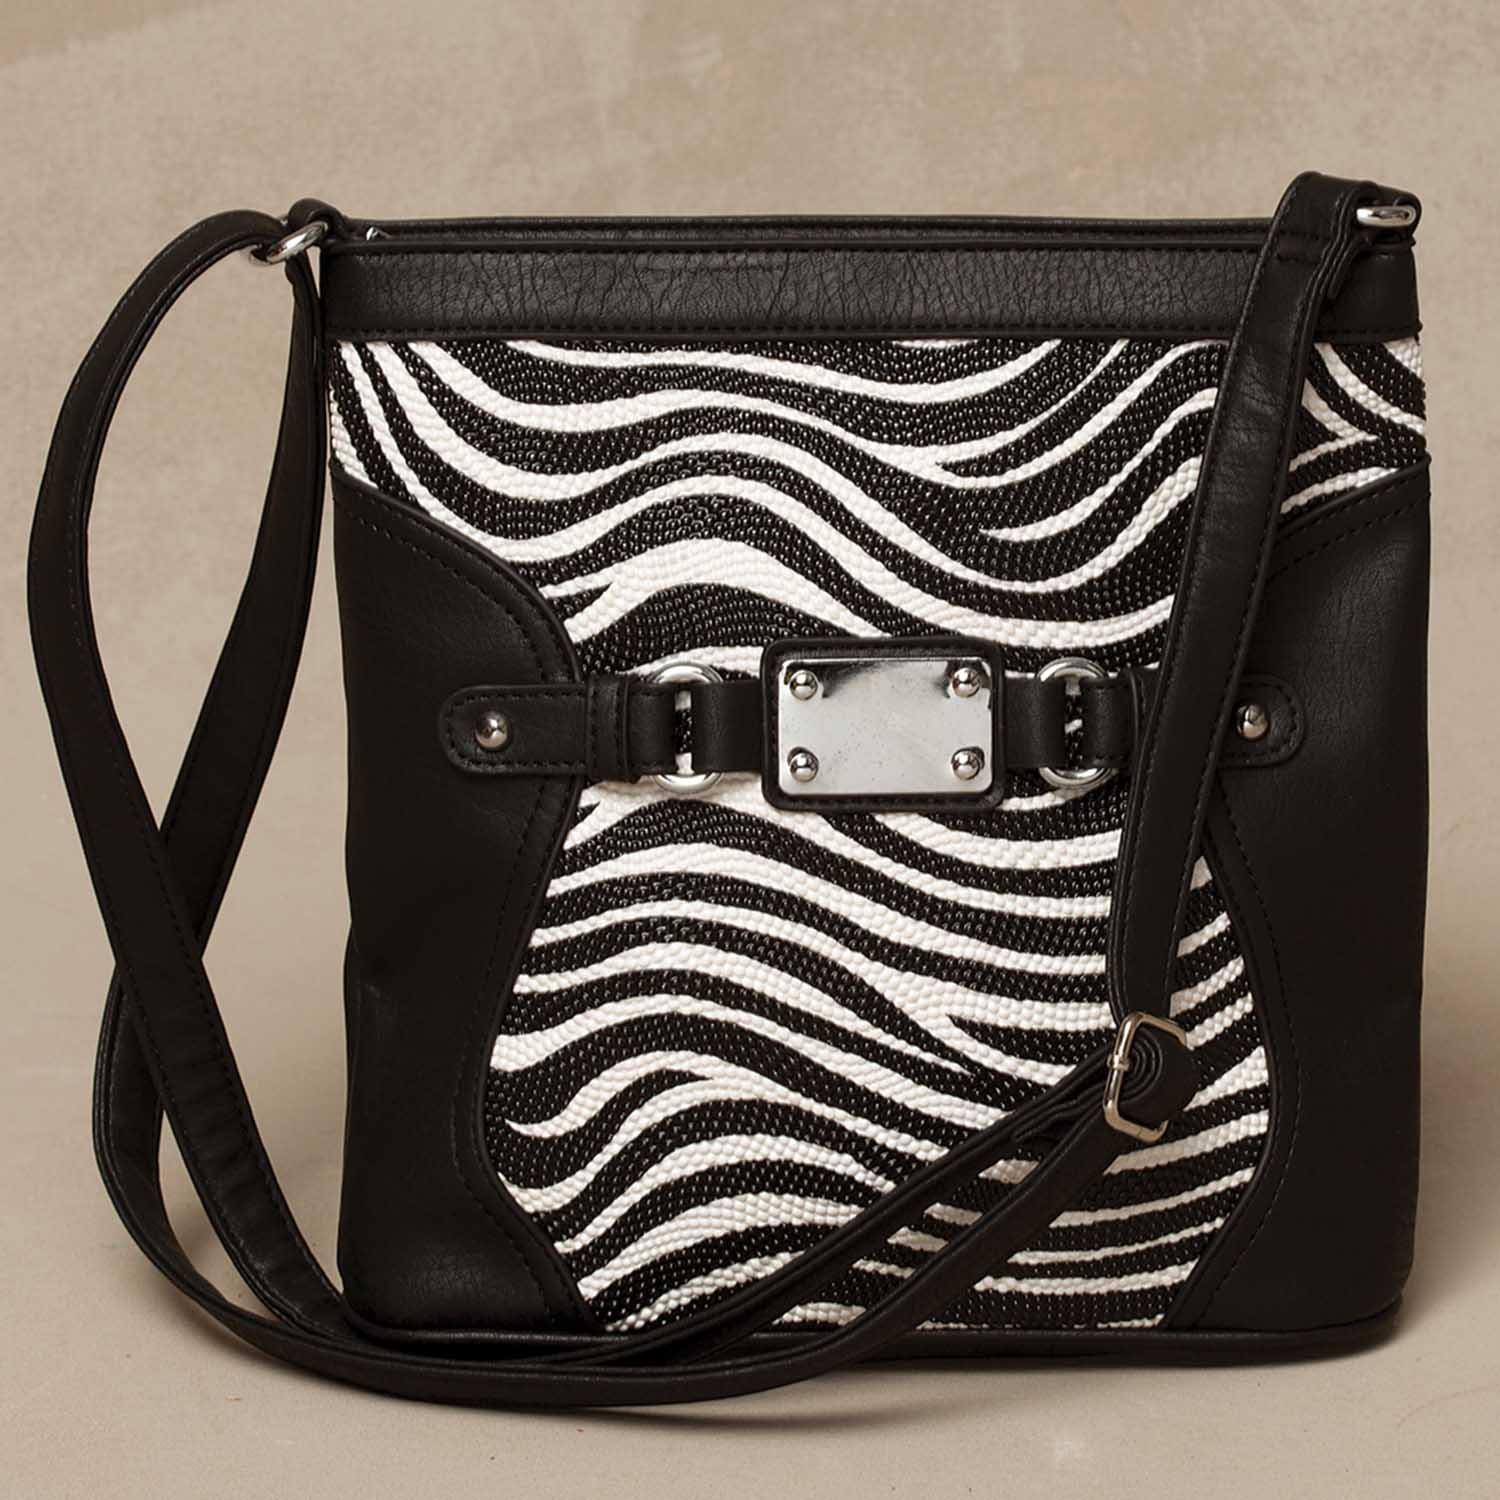 "Black Zebra Pattern Cross-body Bag 9.5""x10"" *30sp"